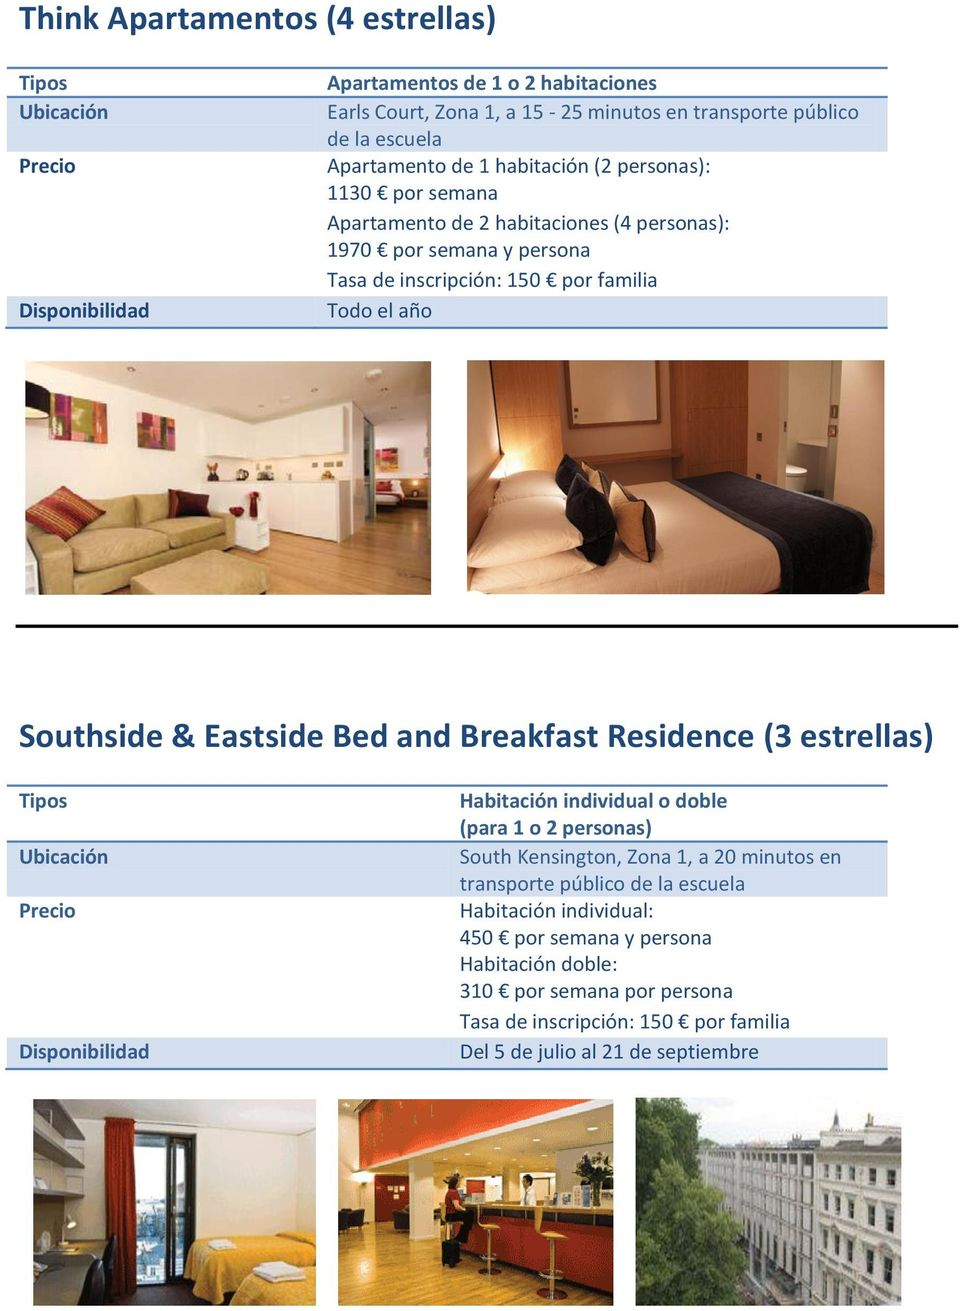 Eastside Bed and Breakfast Residence (3 estrellas) Habitación individual o doble (para 1 o 2 personas) South Kensington, Zona 1, a 20 minutos en